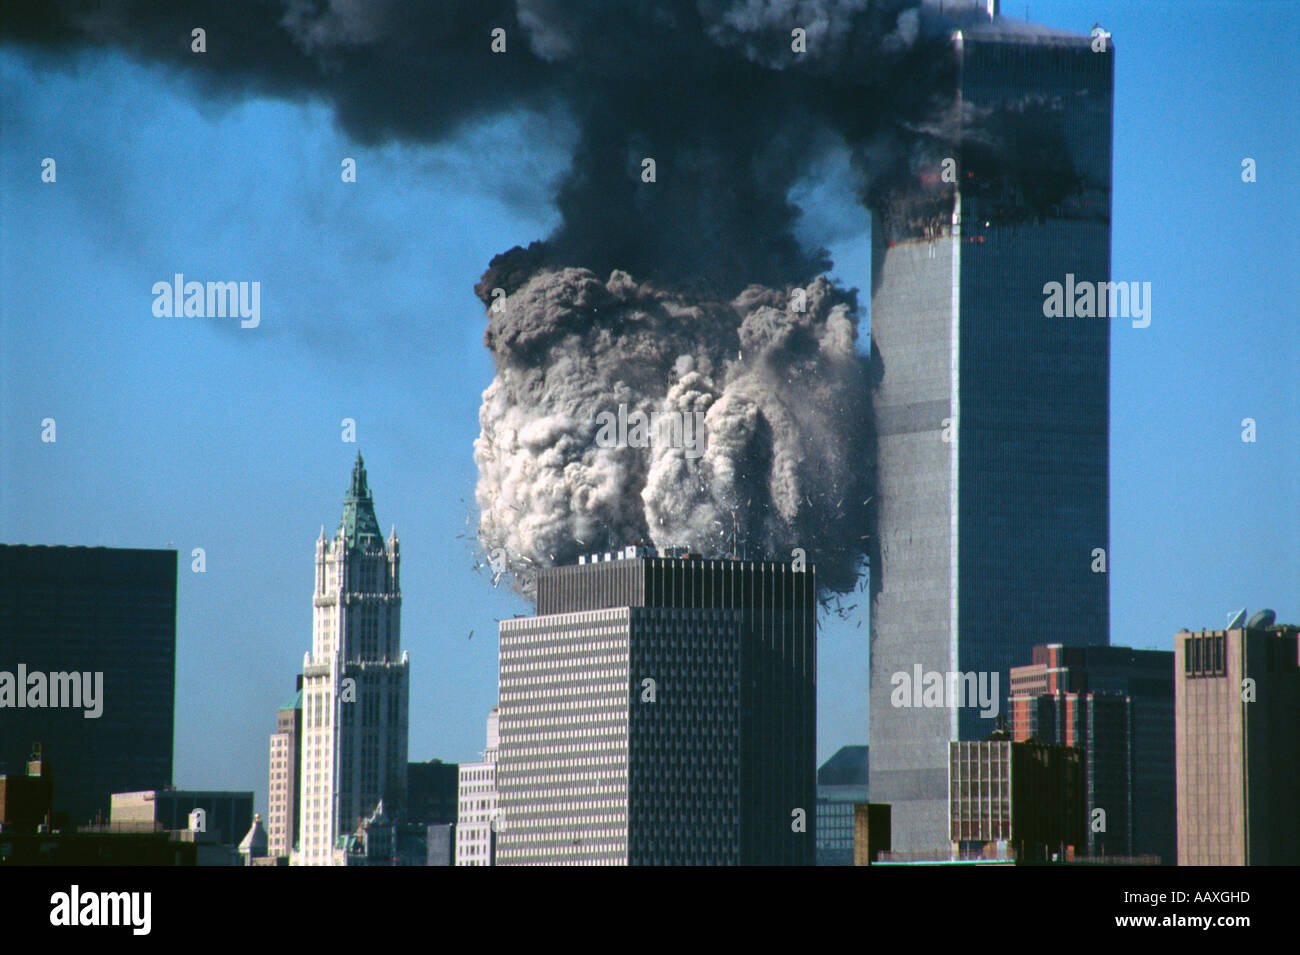 WTC (world trade center) 2 collapsing as WTC 1 still stands behind it in NYC on September 11th, 2001. - Stock Image